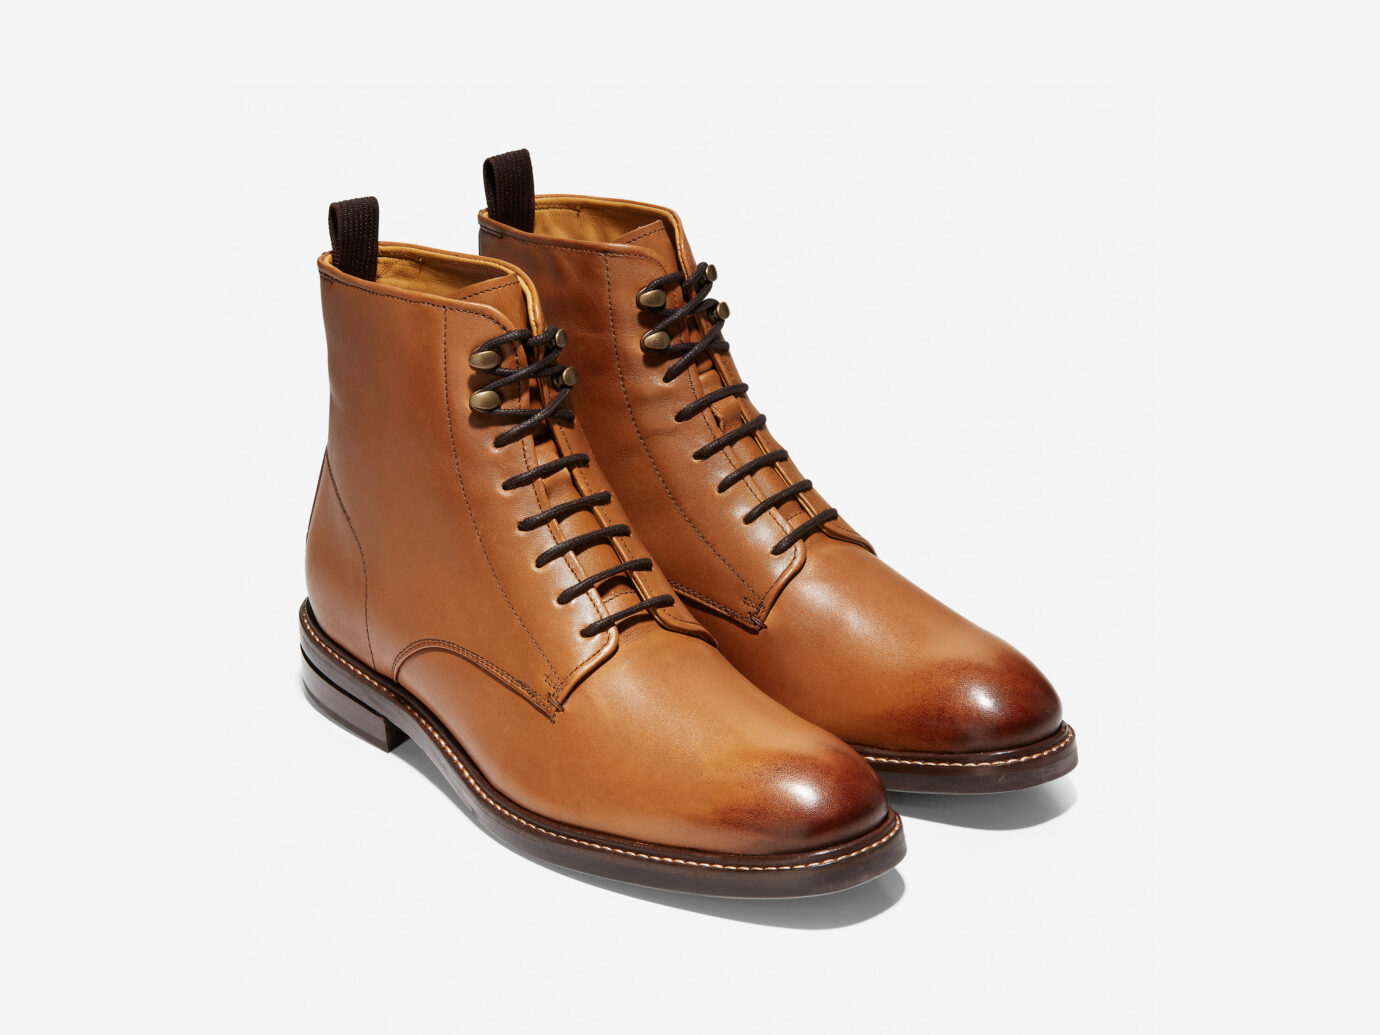 Cole Hann Wagner Grand Plain Toe Boot